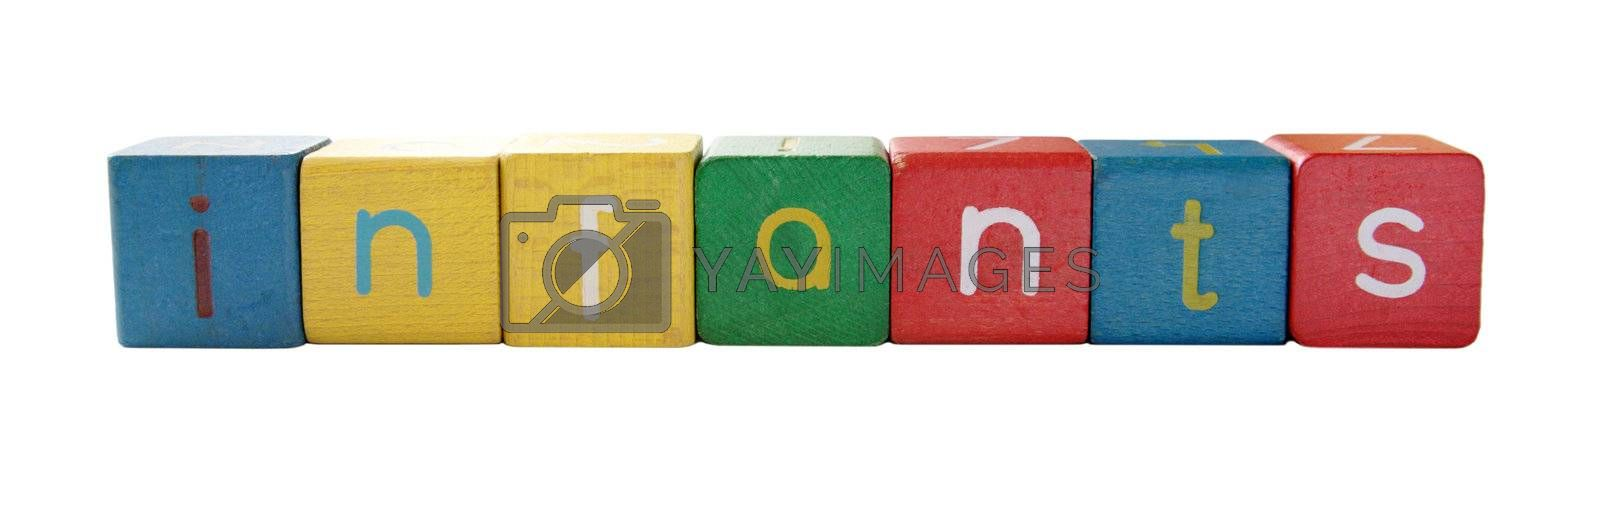 the word 'infants' in colorful children's block letters isolated on white